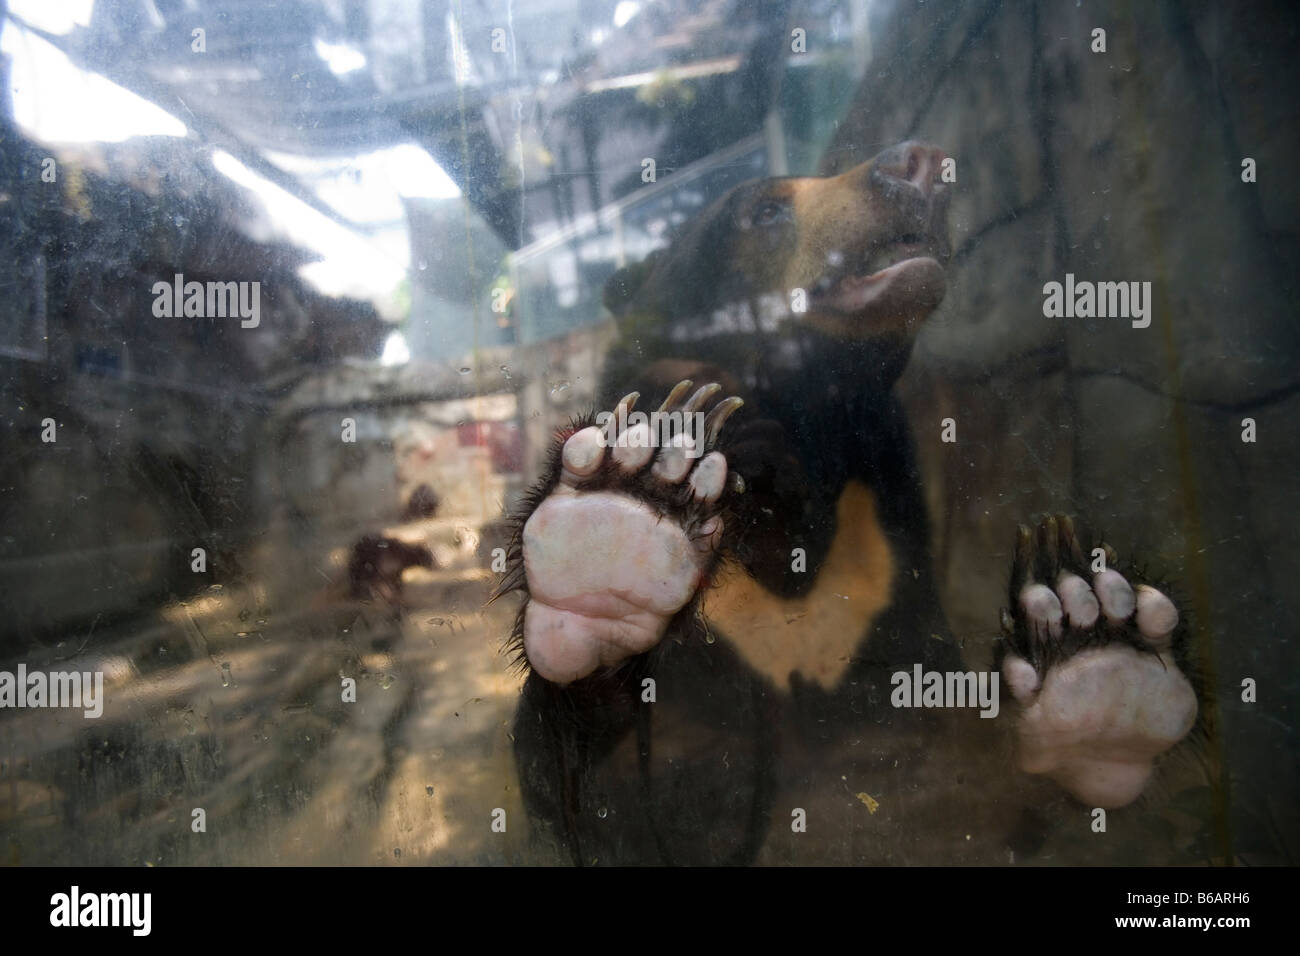 A sun bear places it's paws of the window at a Bangkok zoo. - Stock Image